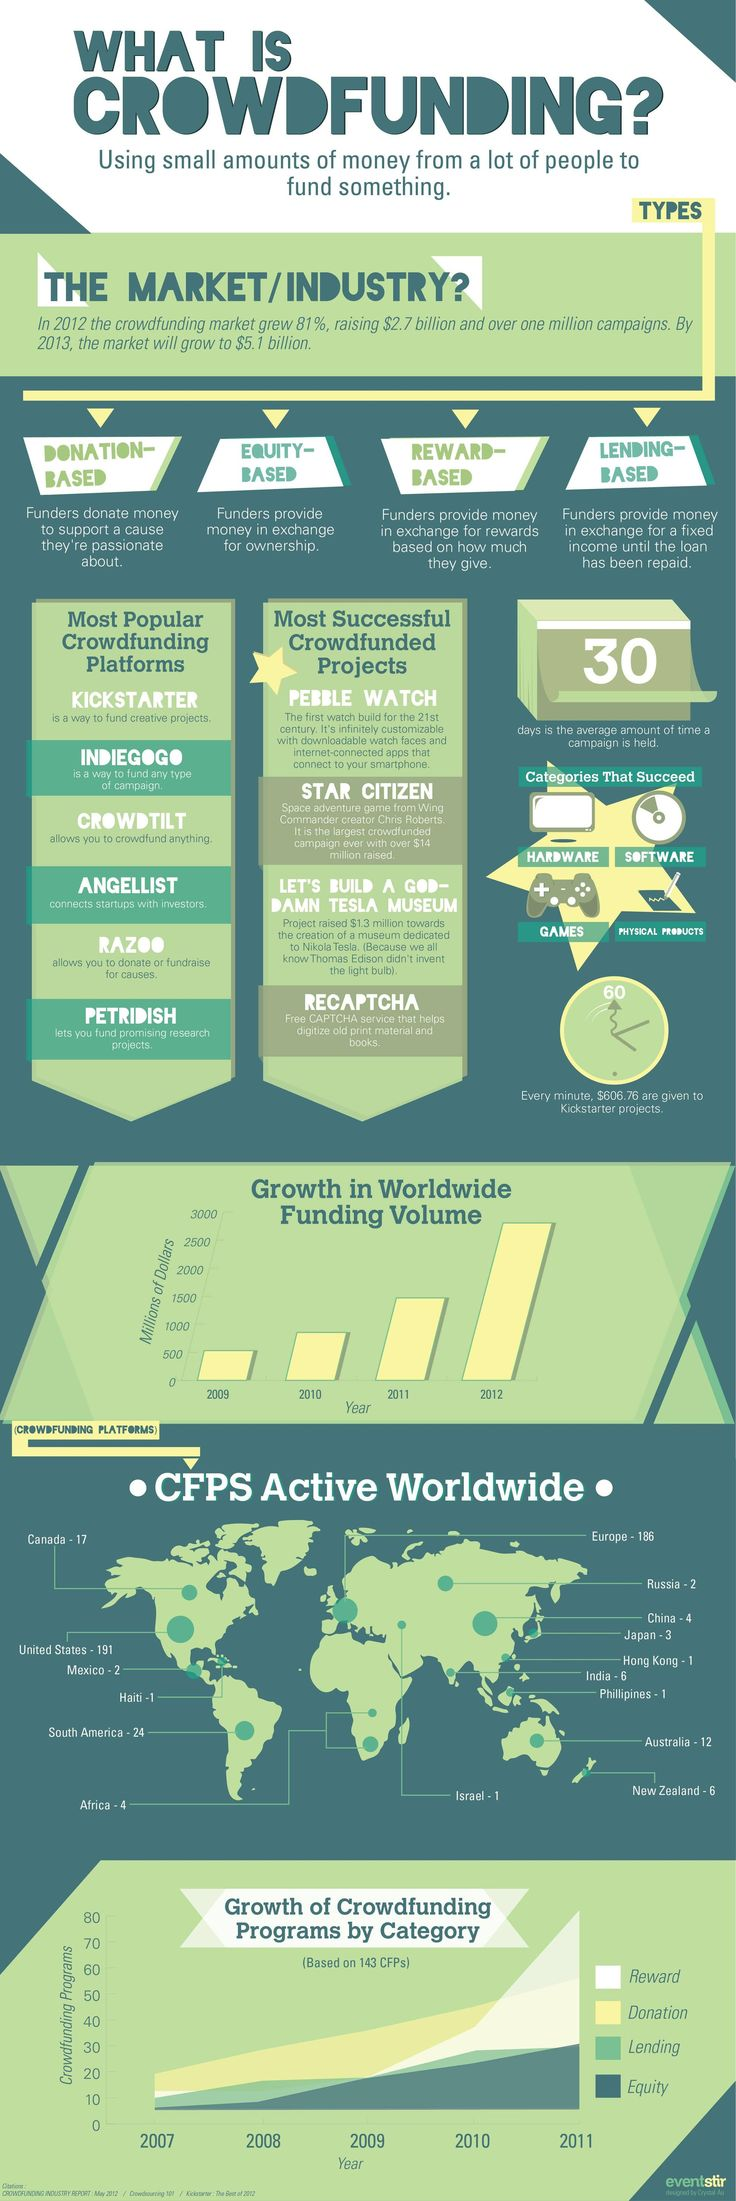 The Worldwide Crowdfunding Landscape: An Infographic